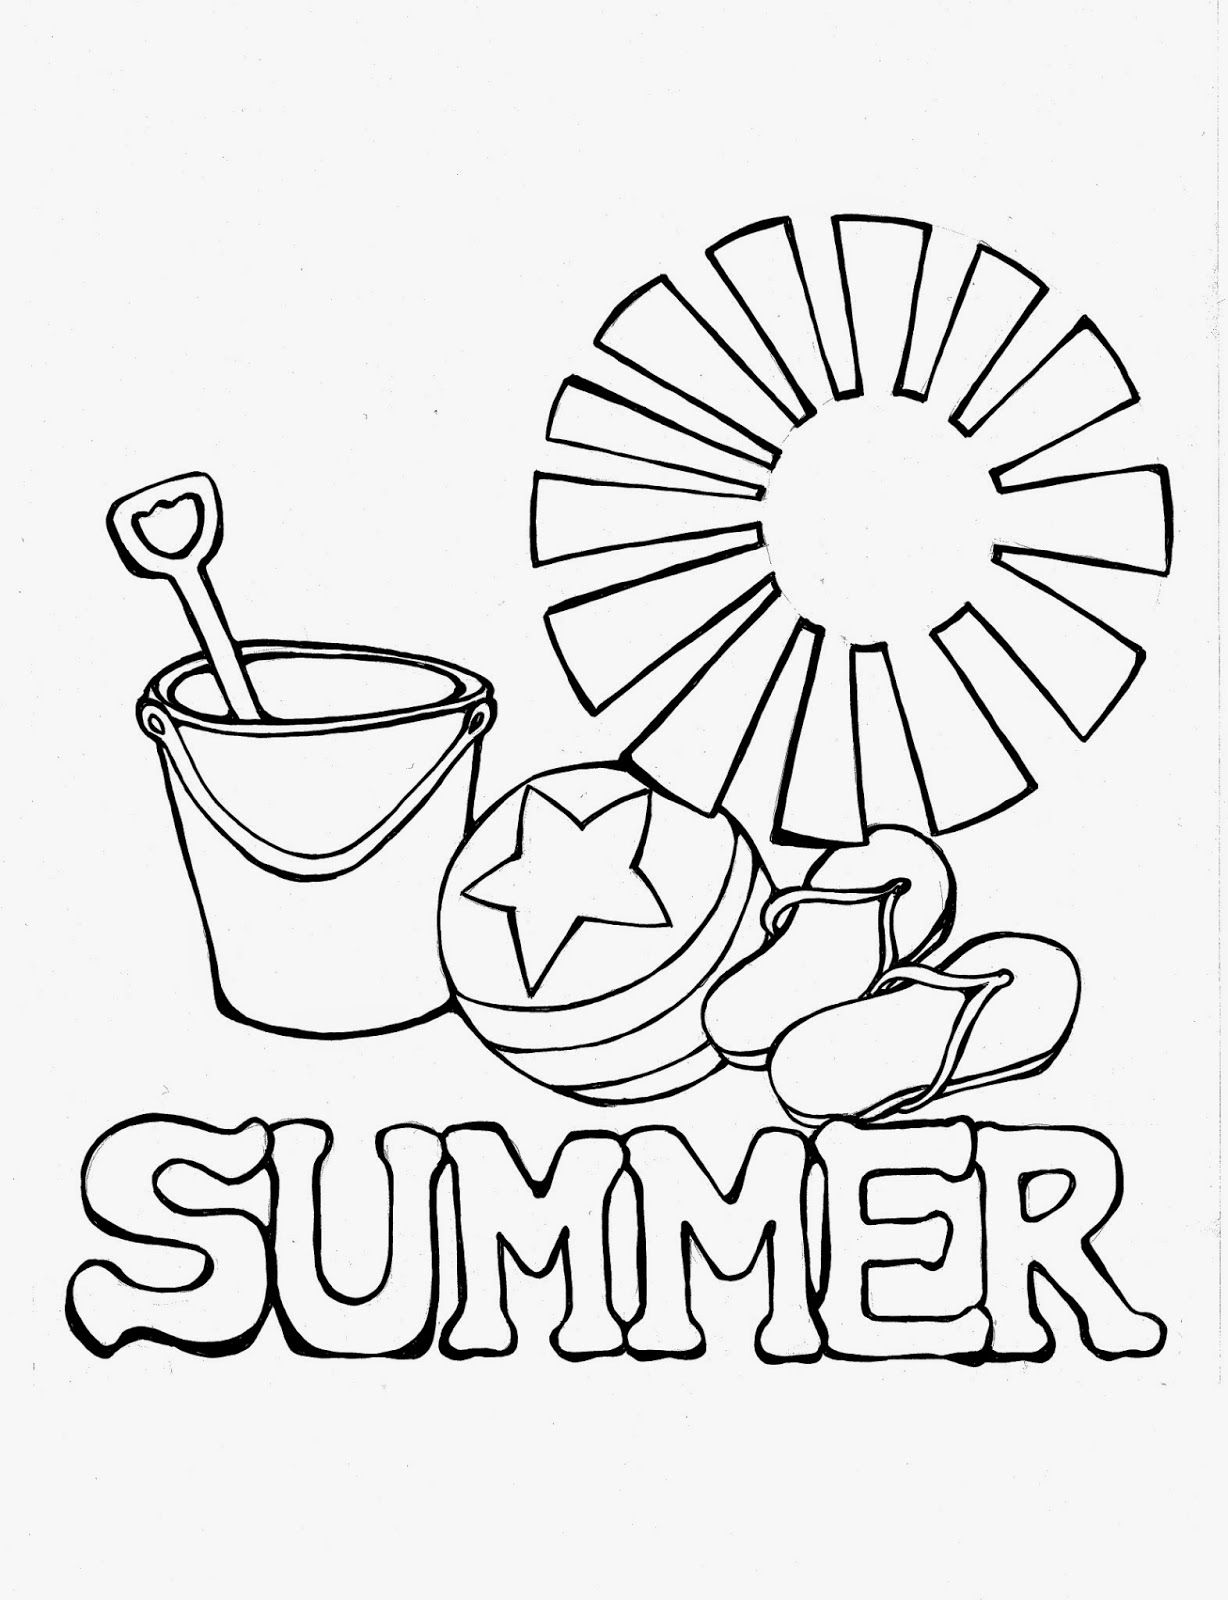 Summer Printable Coloring Pages For Toddlers Display